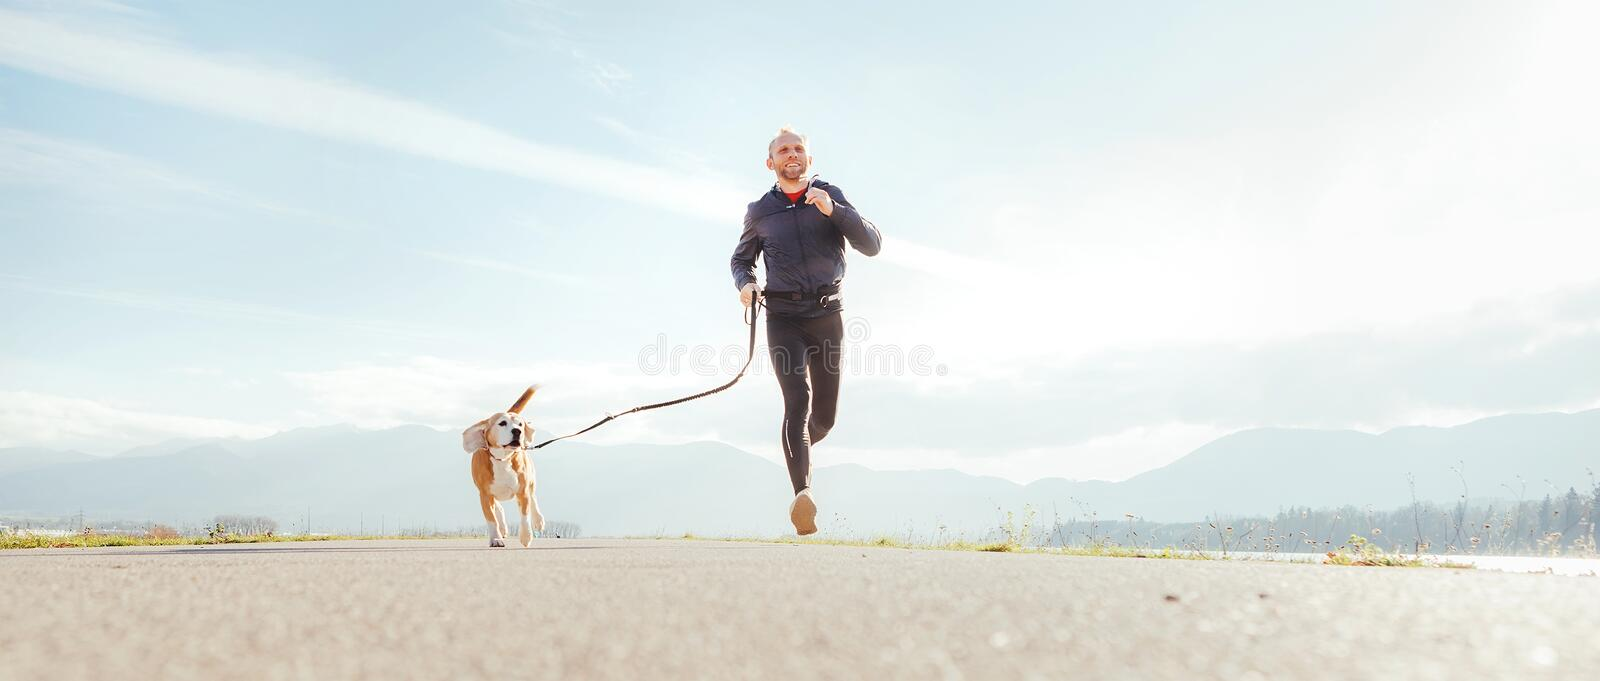 Running man with his dog . Active healthy lifestyle concept image stock photos